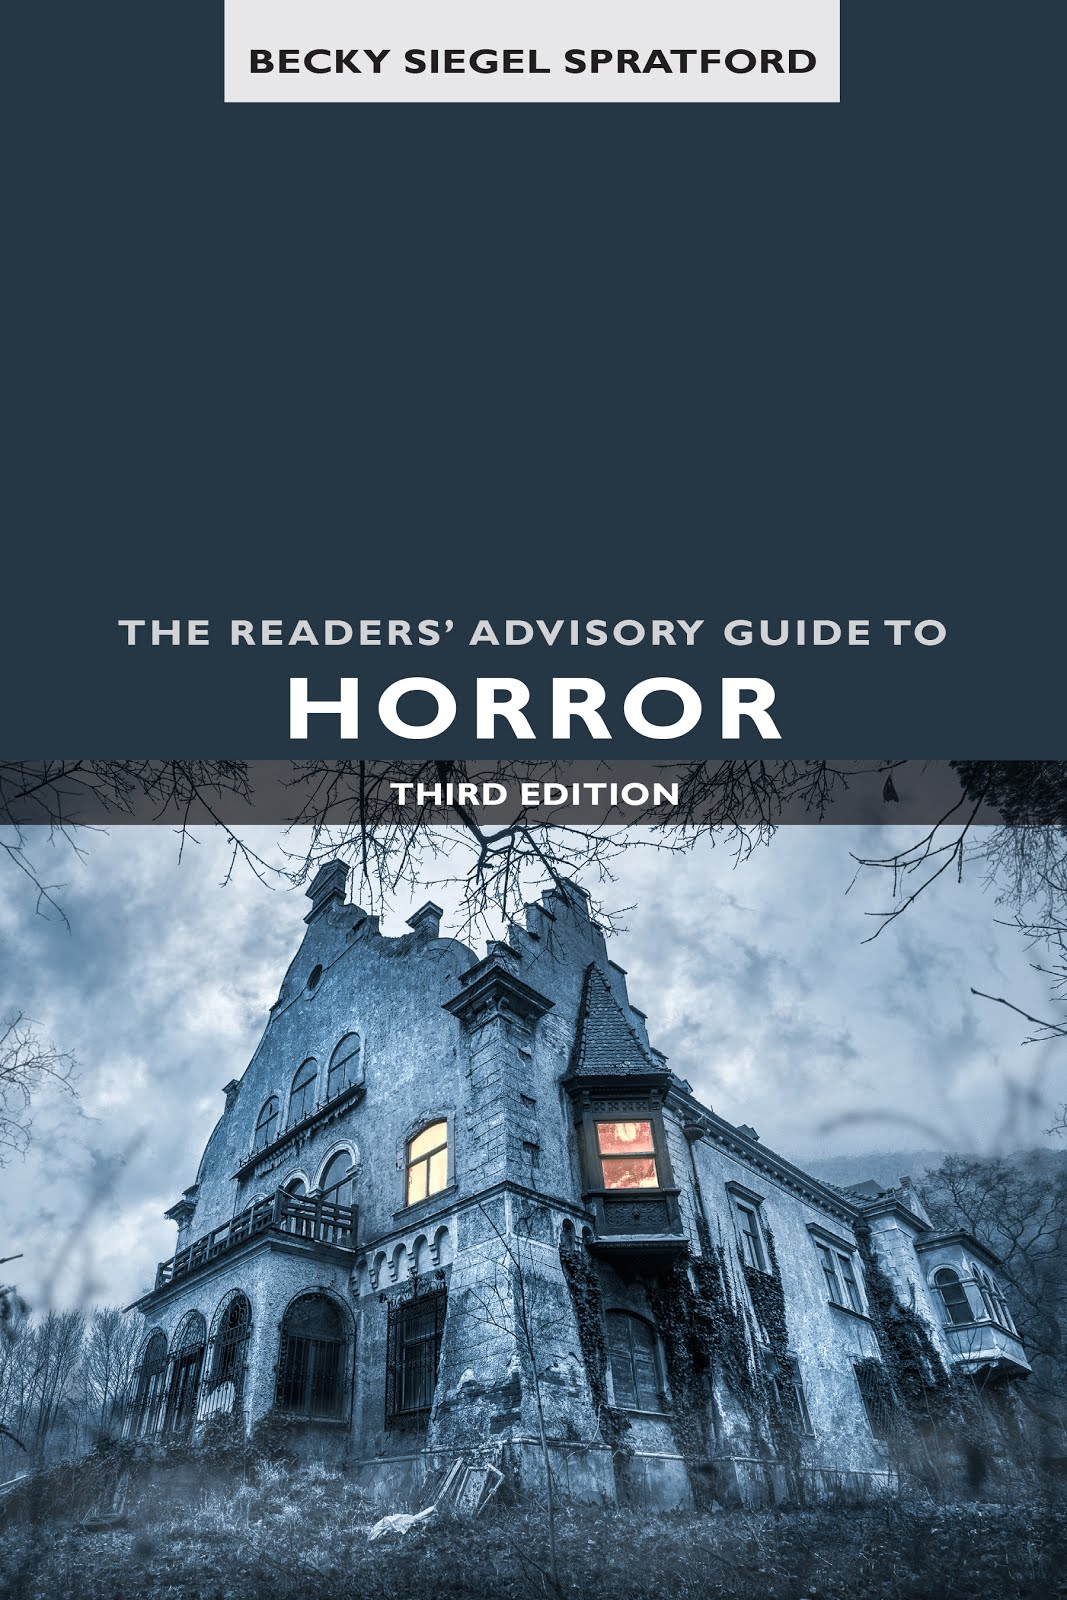 The Readers' Advisory Guide to Horror, 3rd Edition